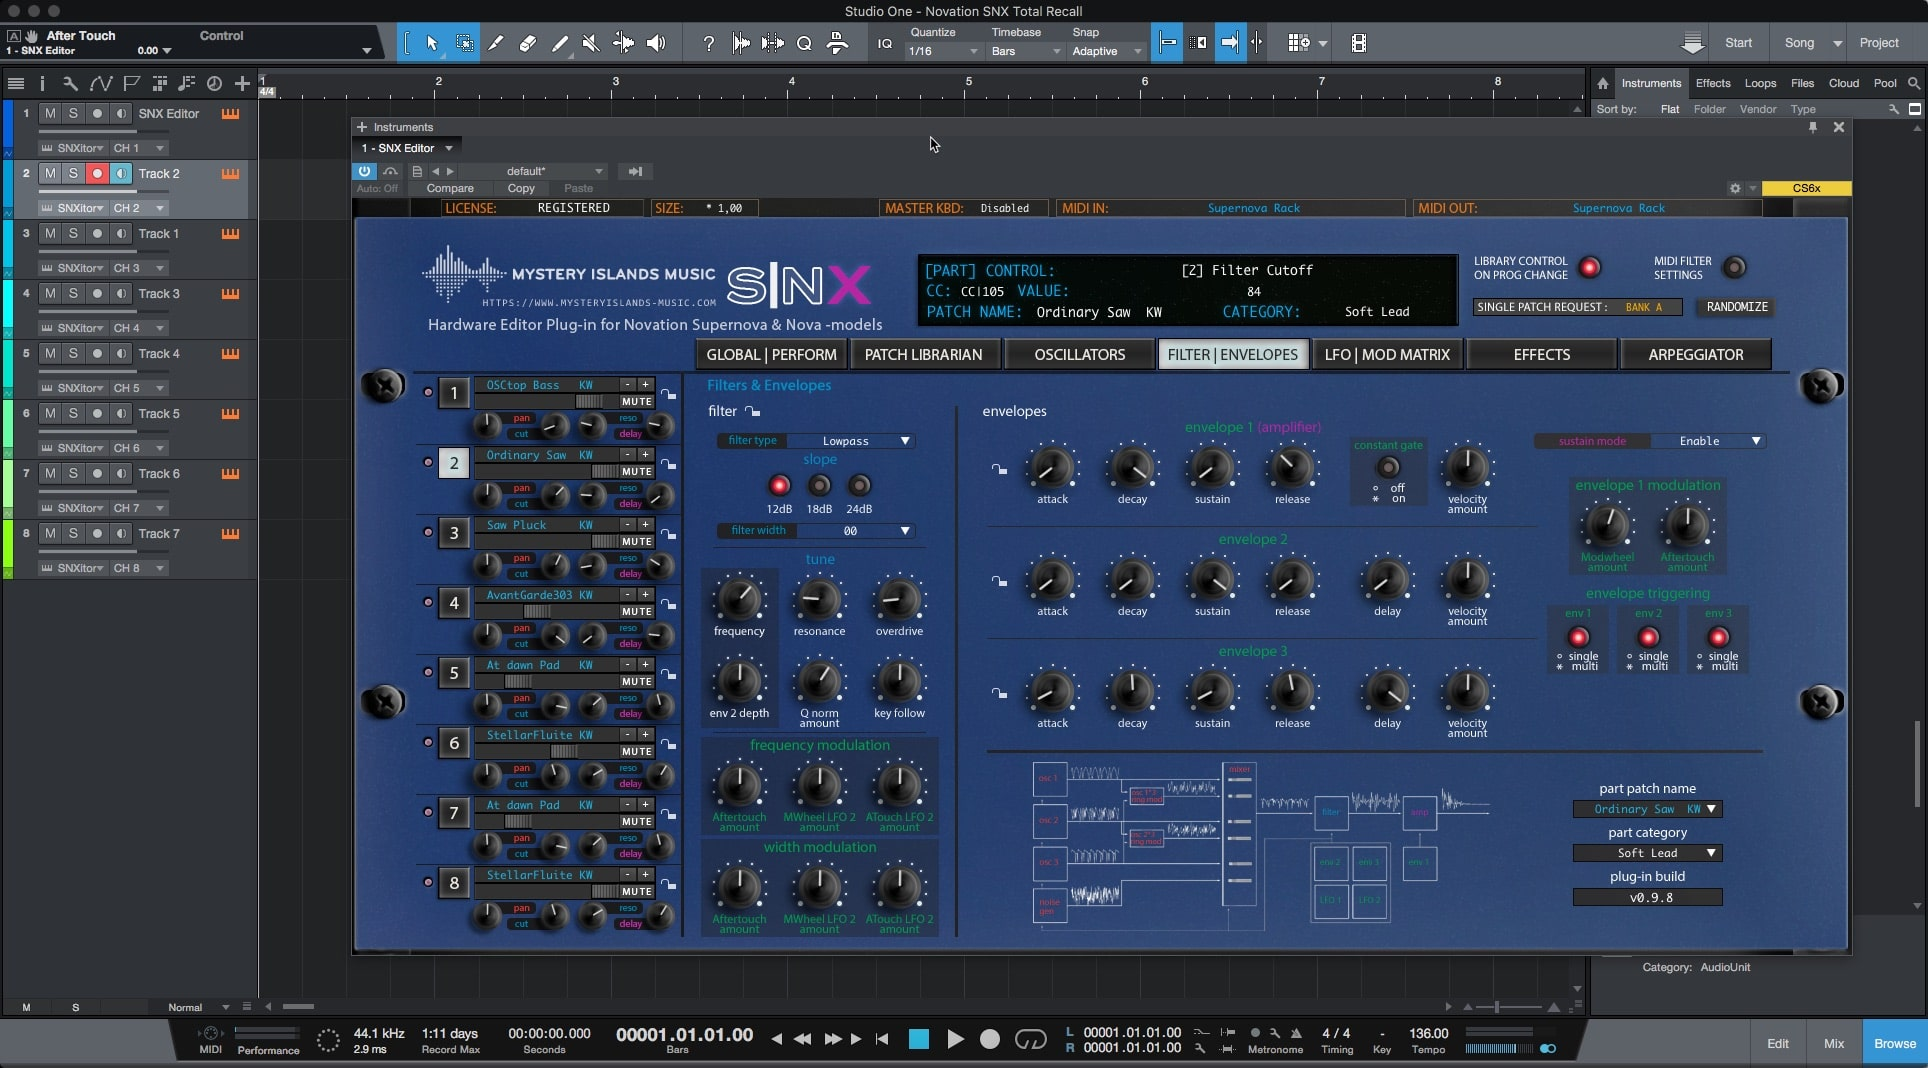 Novation SNX Update v0.9.8 Available Now